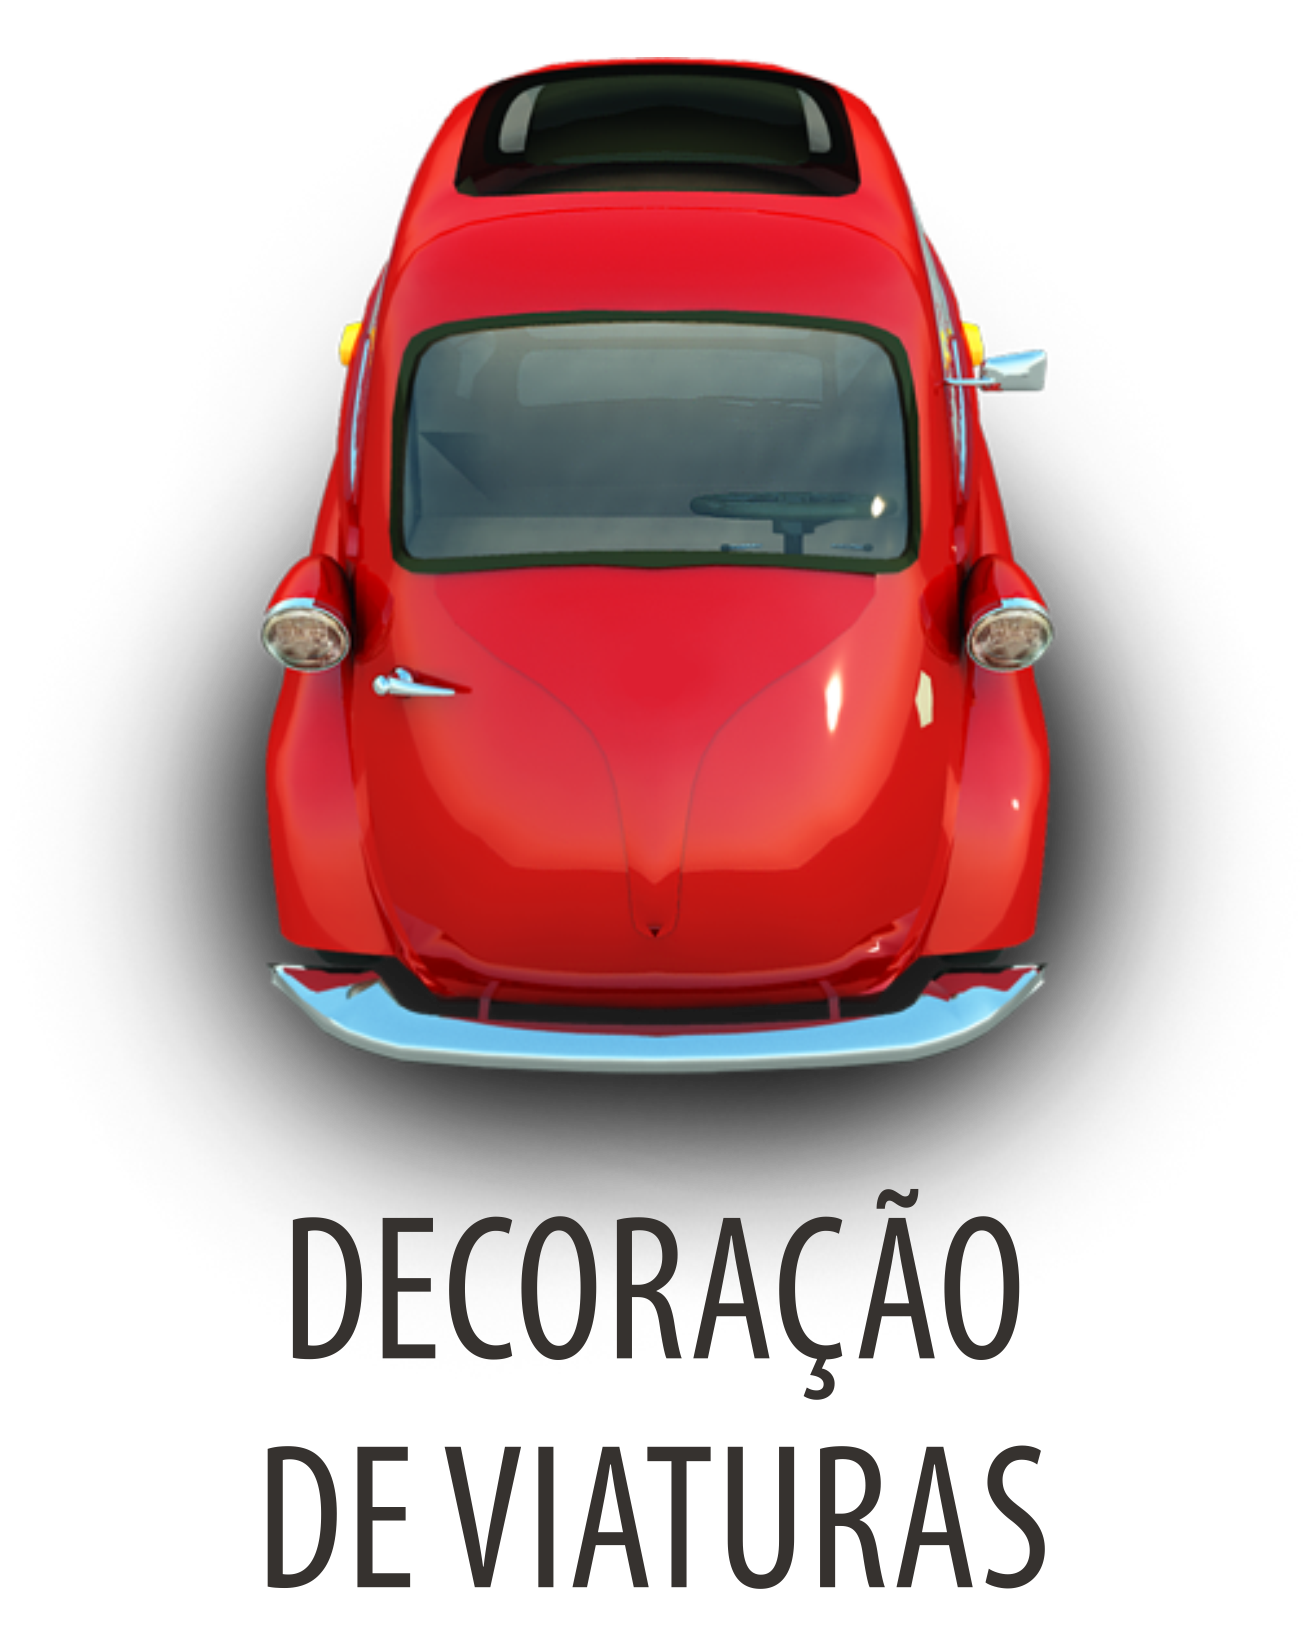 Decoracao de Viaturas